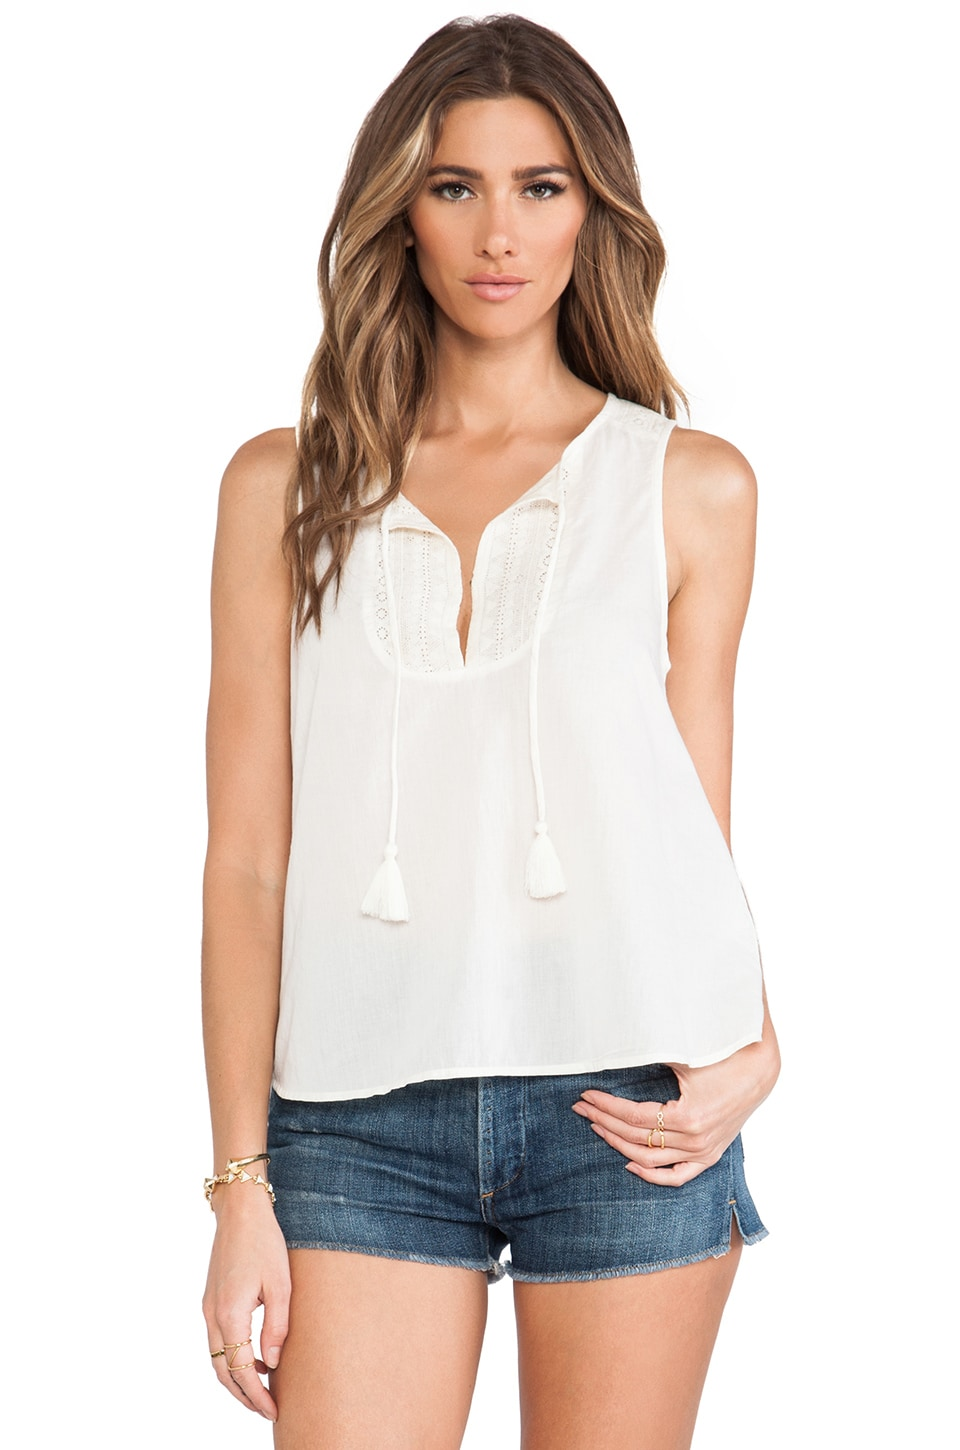 Soft Joie Dimi Top in Eggshell